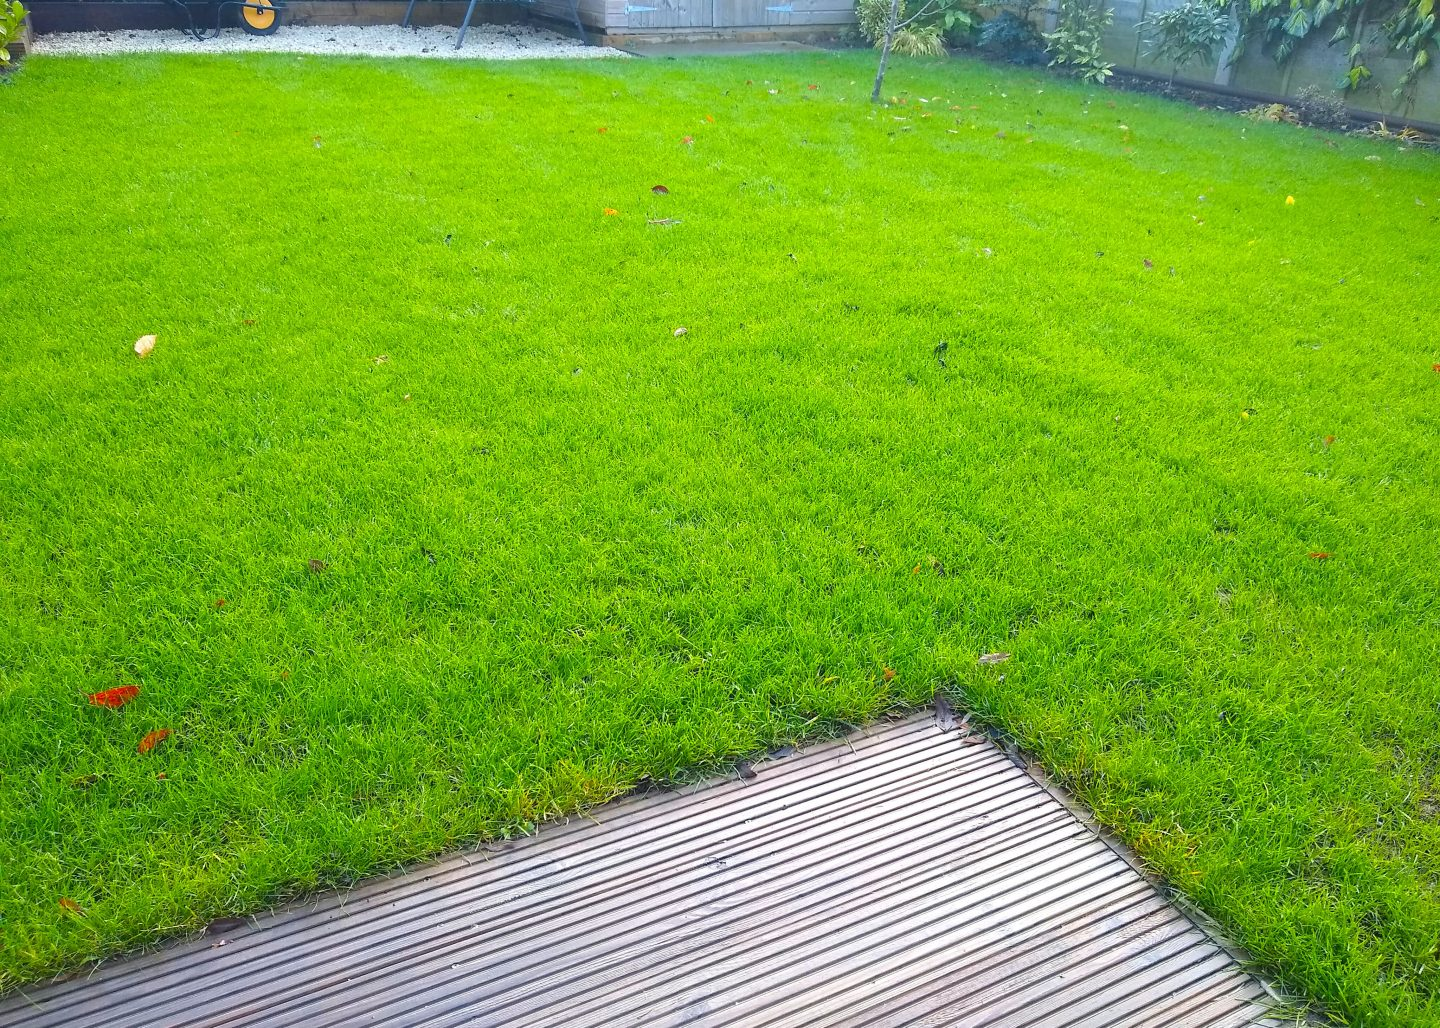 maidstone-lawn-renovation-after-4 weeks